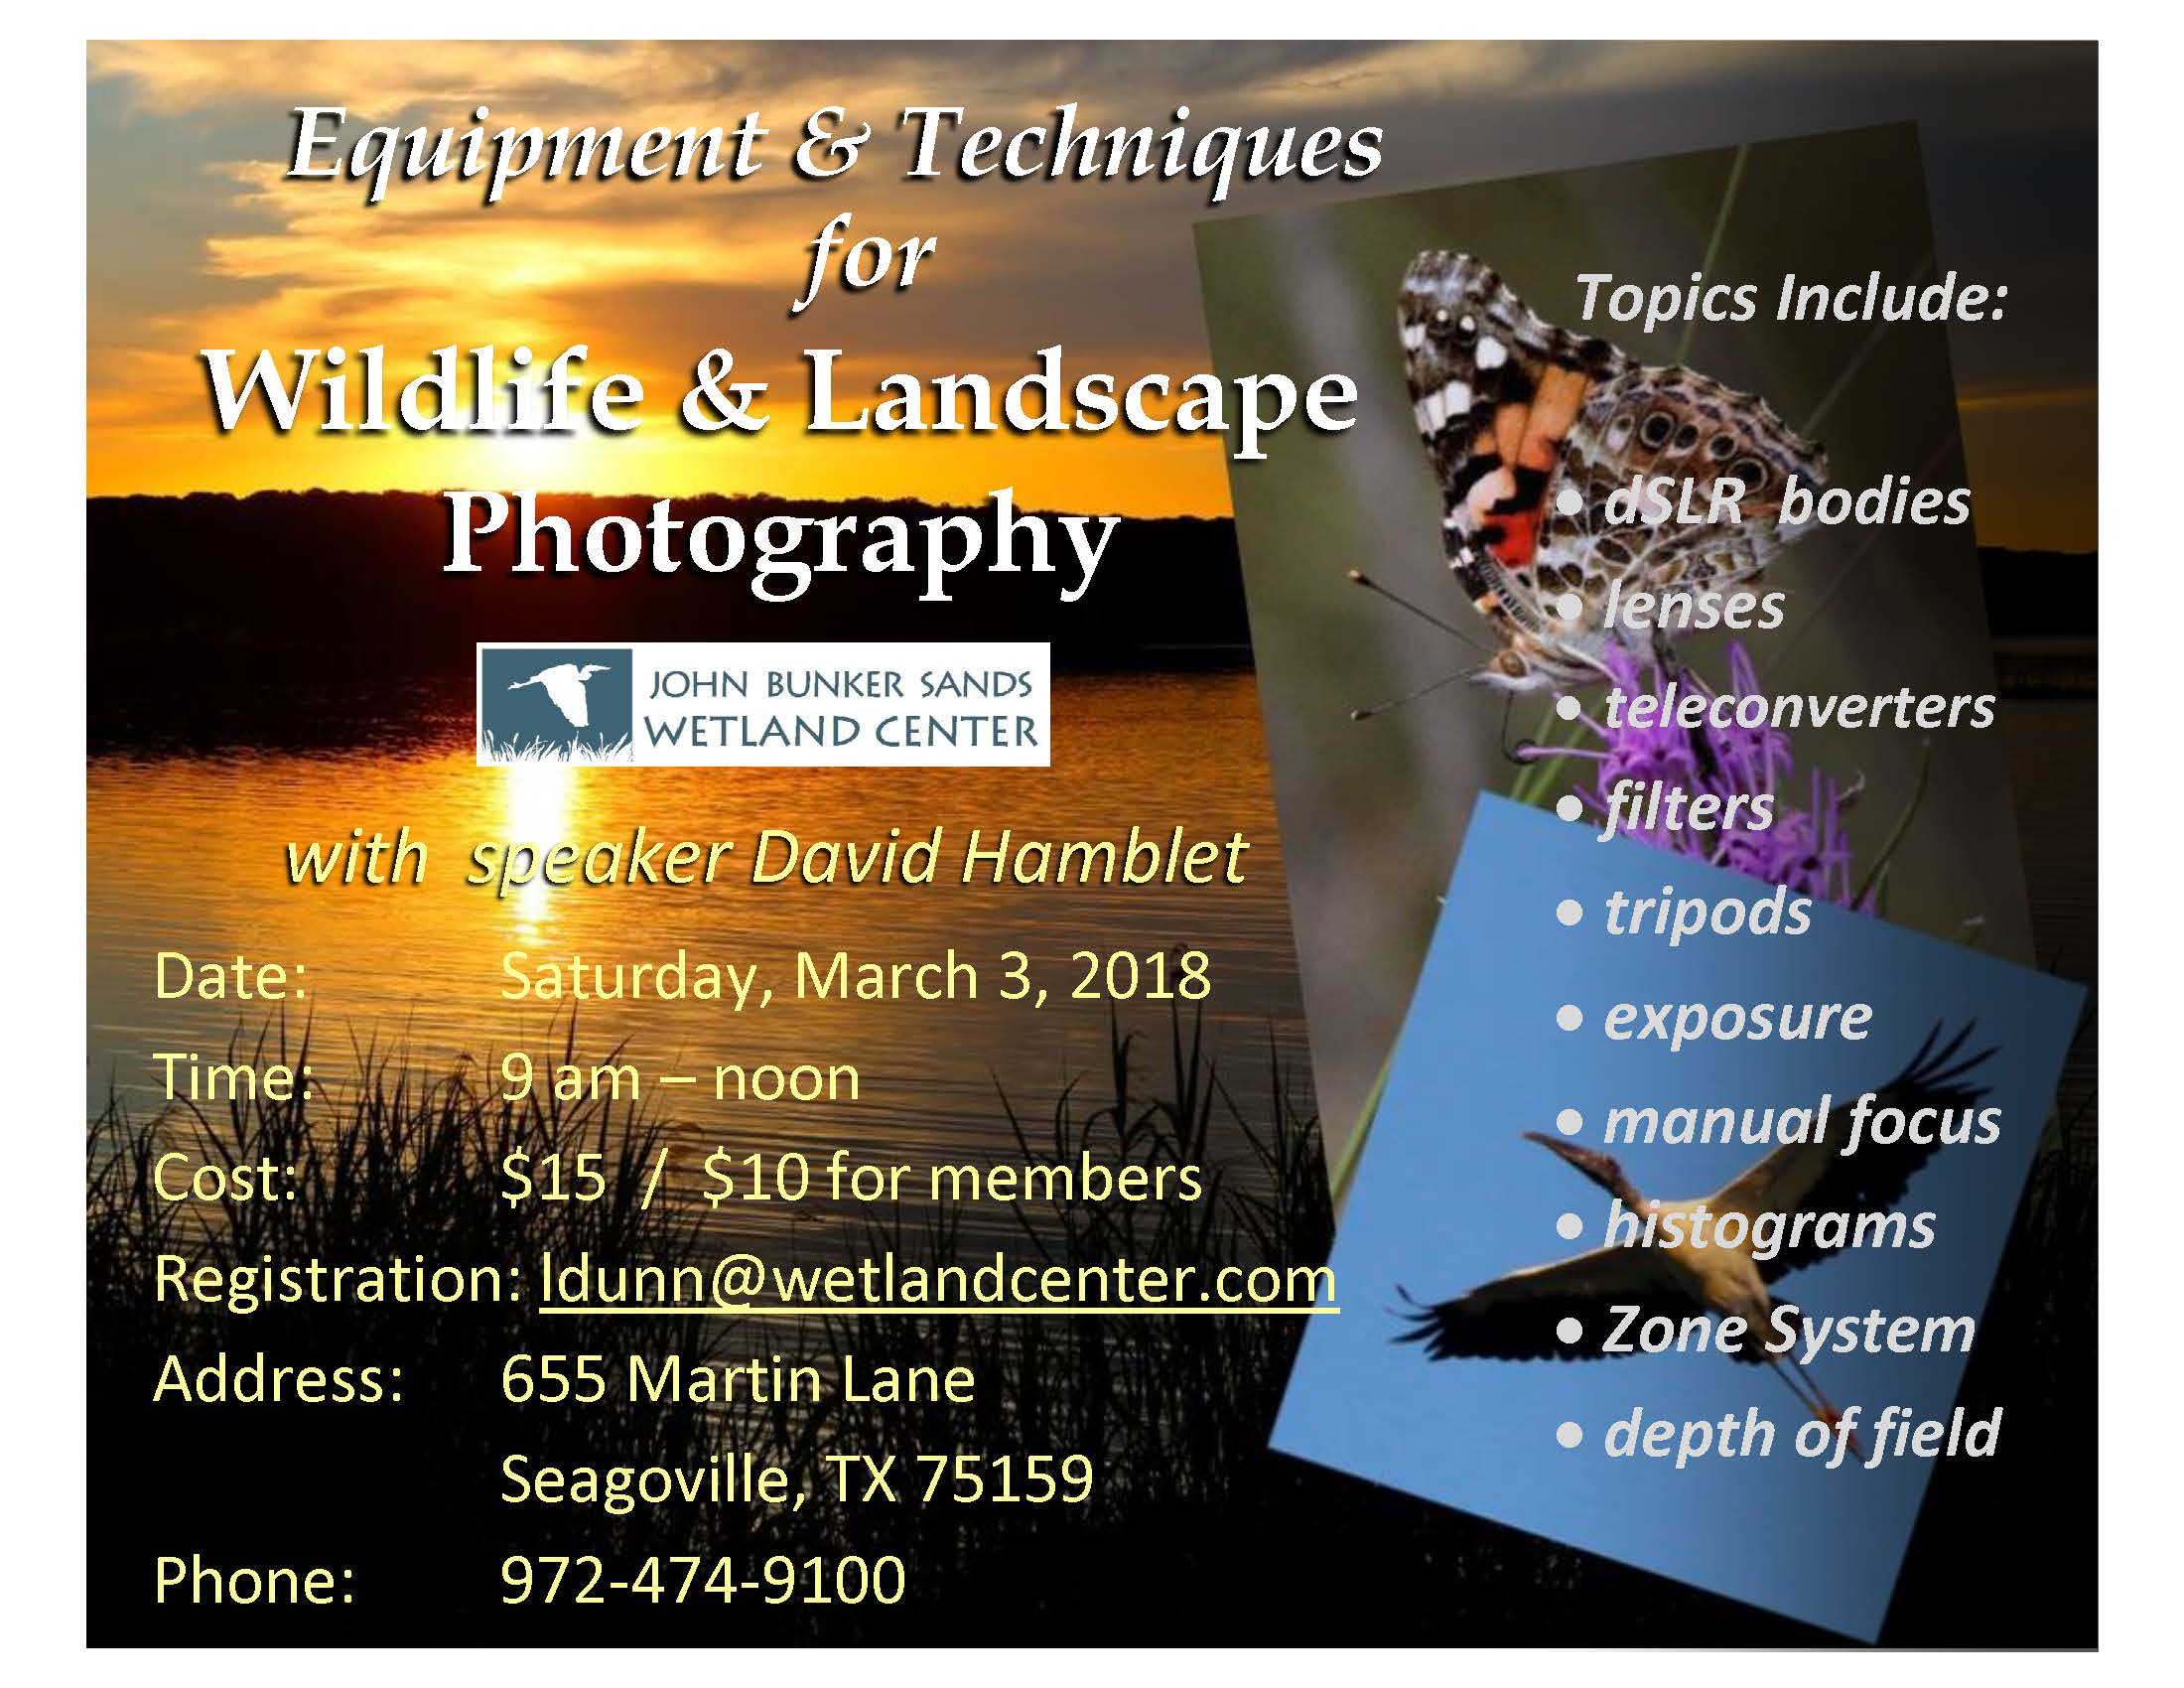 Equipment & Techniques for Wildlife & Landscape Photography